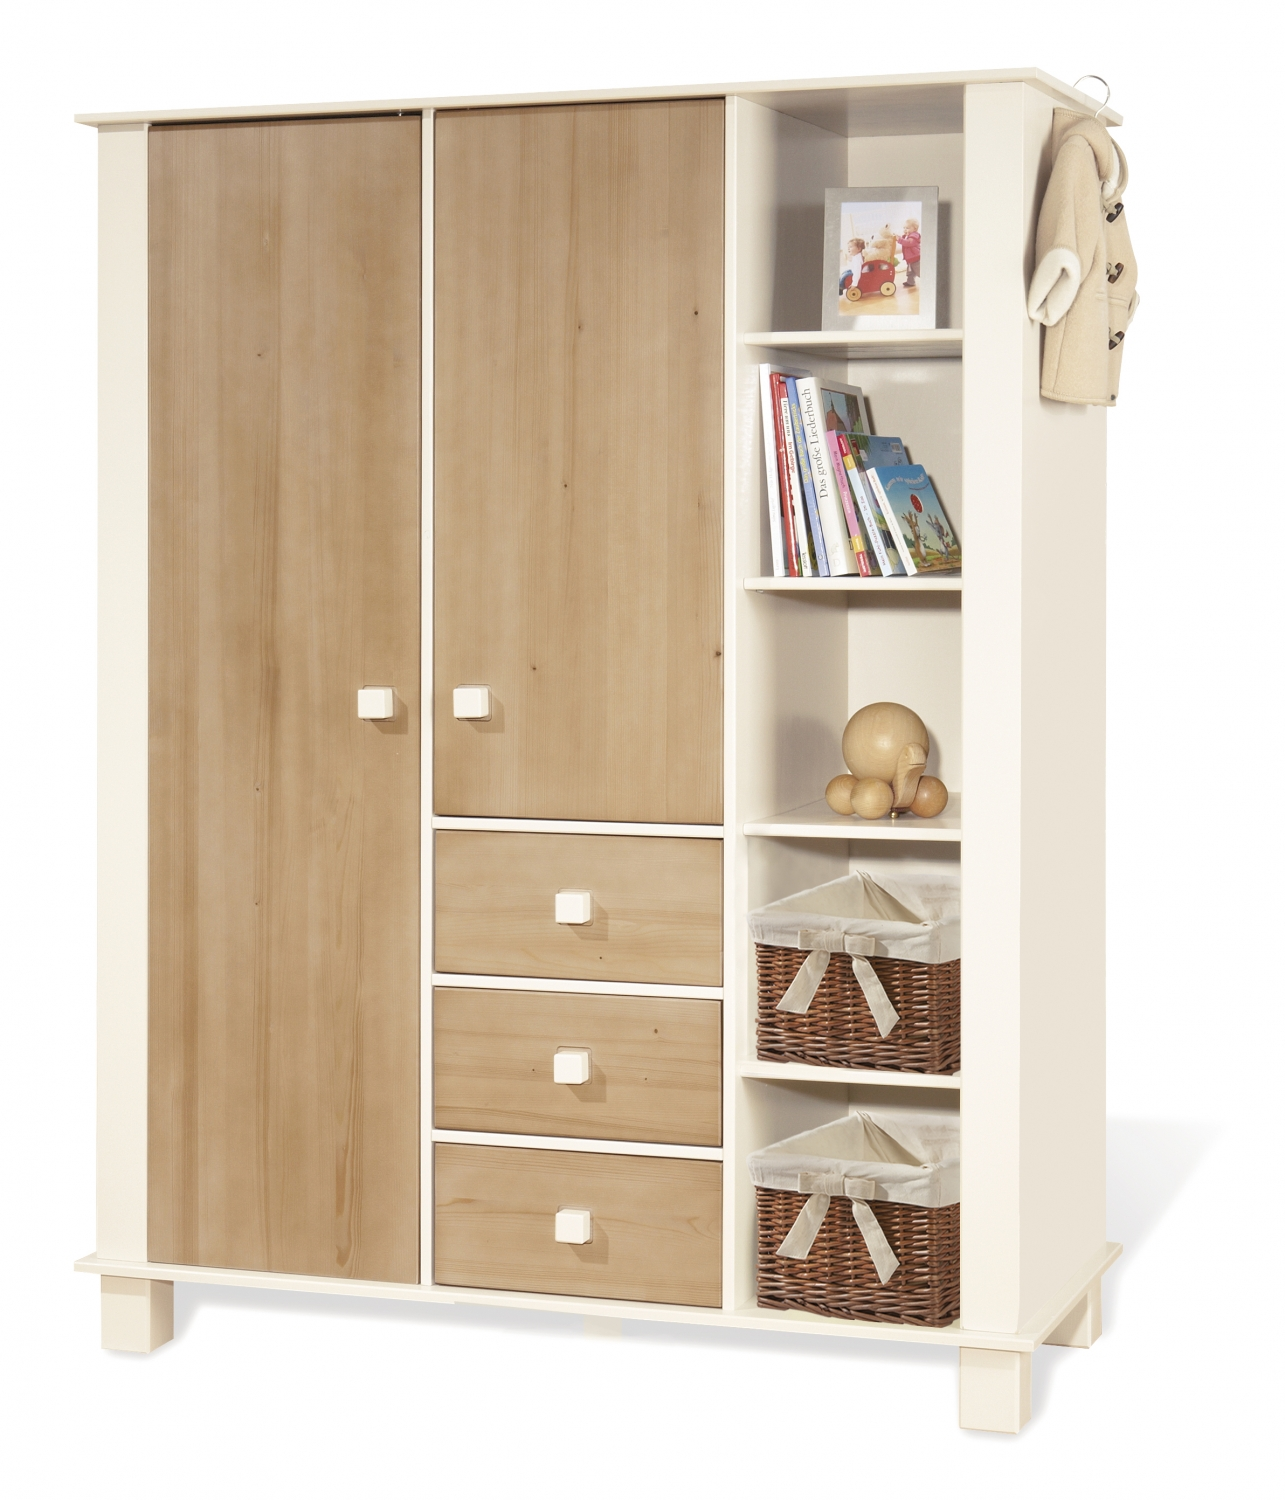 pinolino armoire nina 1 porte pin massif lasure blanche. Black Bedroom Furniture Sets. Home Design Ideas